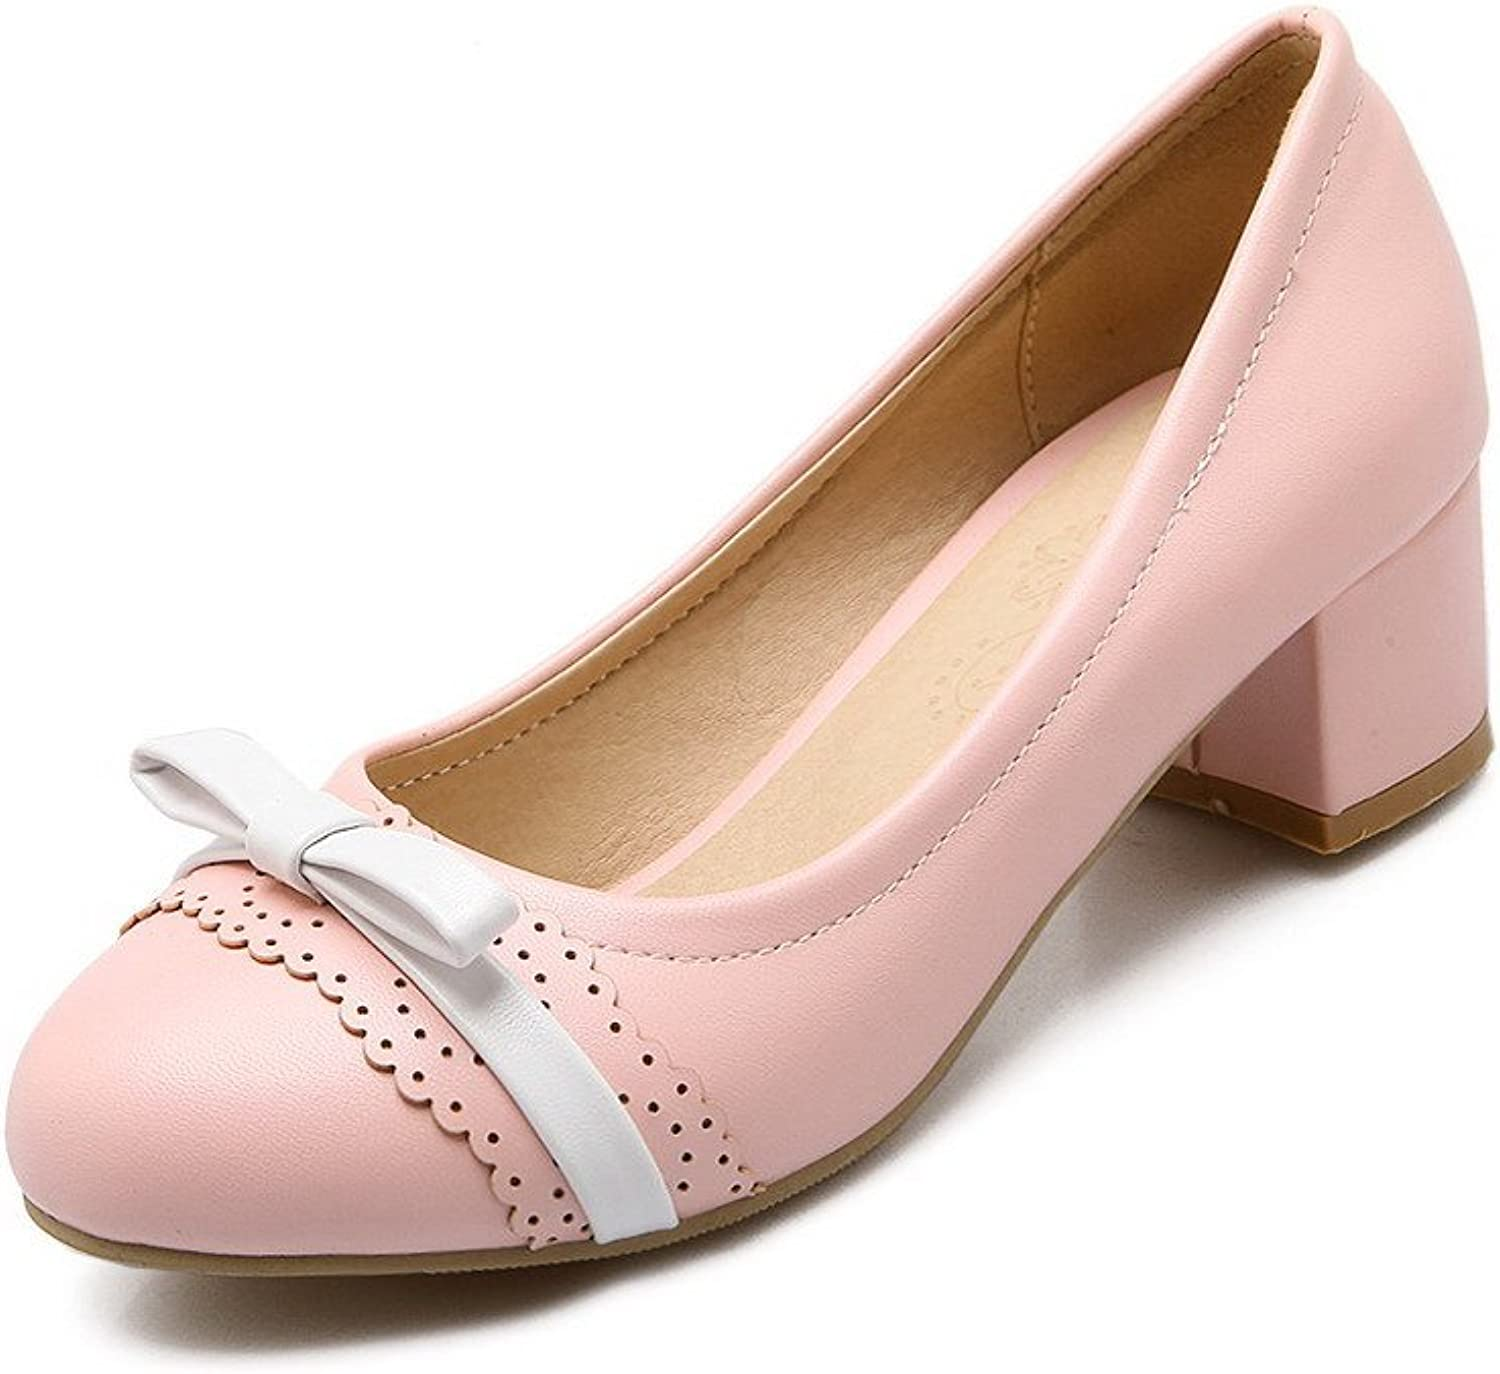 WeenFashion Women's Low-Heels Soft Material Pull-on Round Closed Toe Pumps-shoes